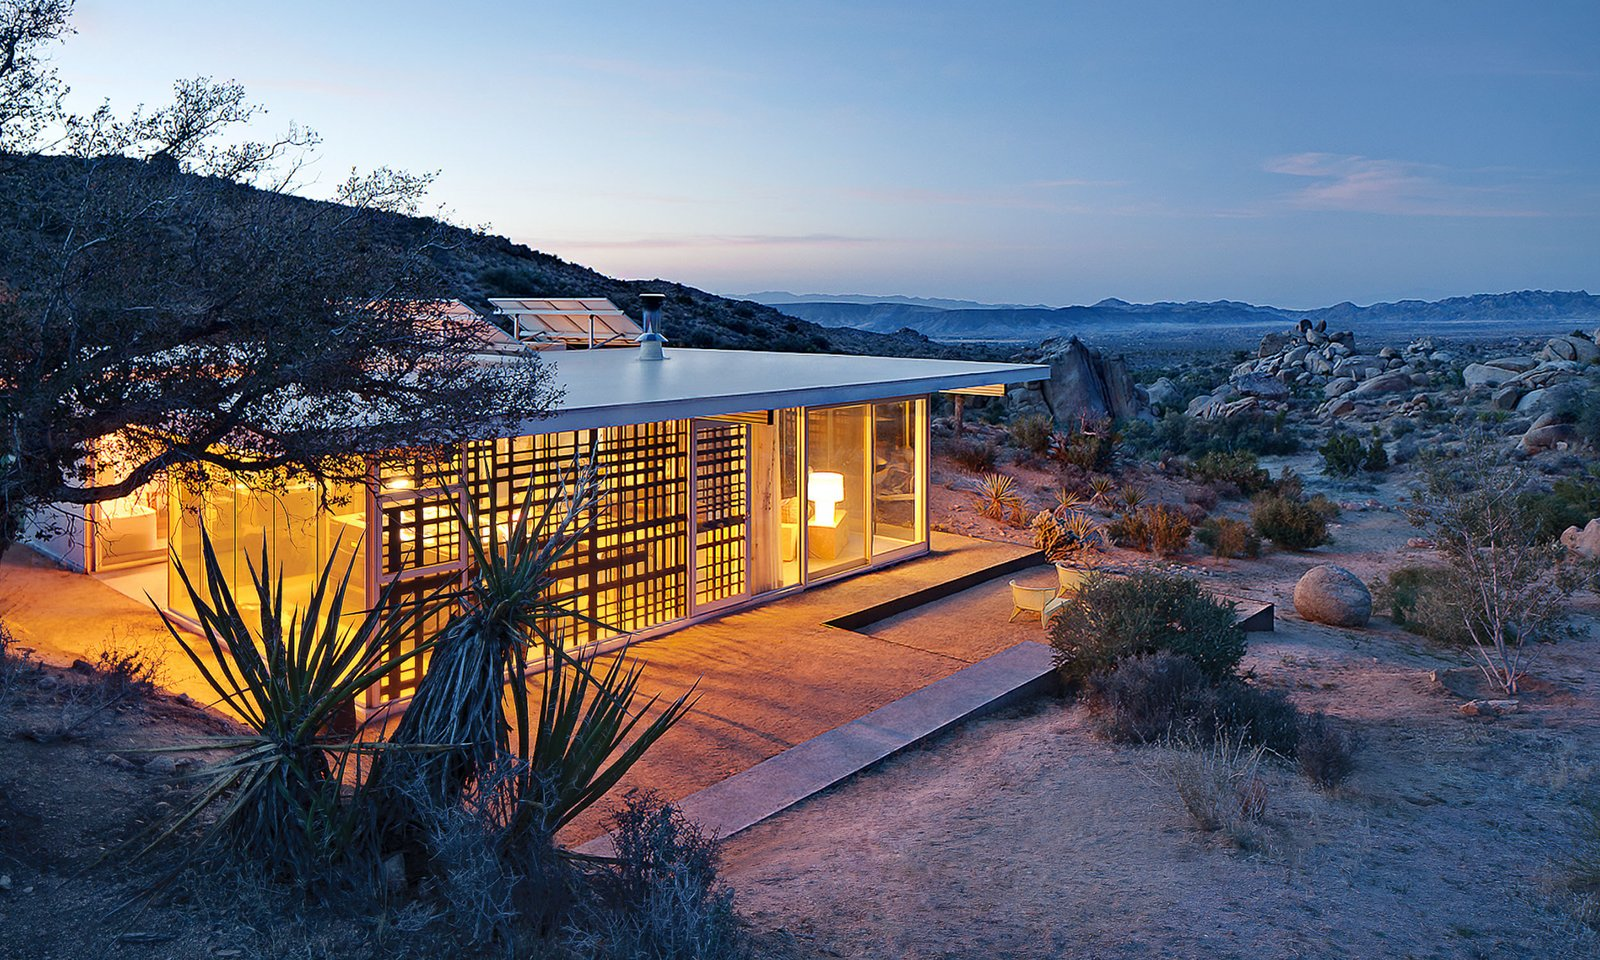 Off The Grid ItHouse // Taalman & Koch  Modern, Off-the-Grid Homes by Aileen Kwun